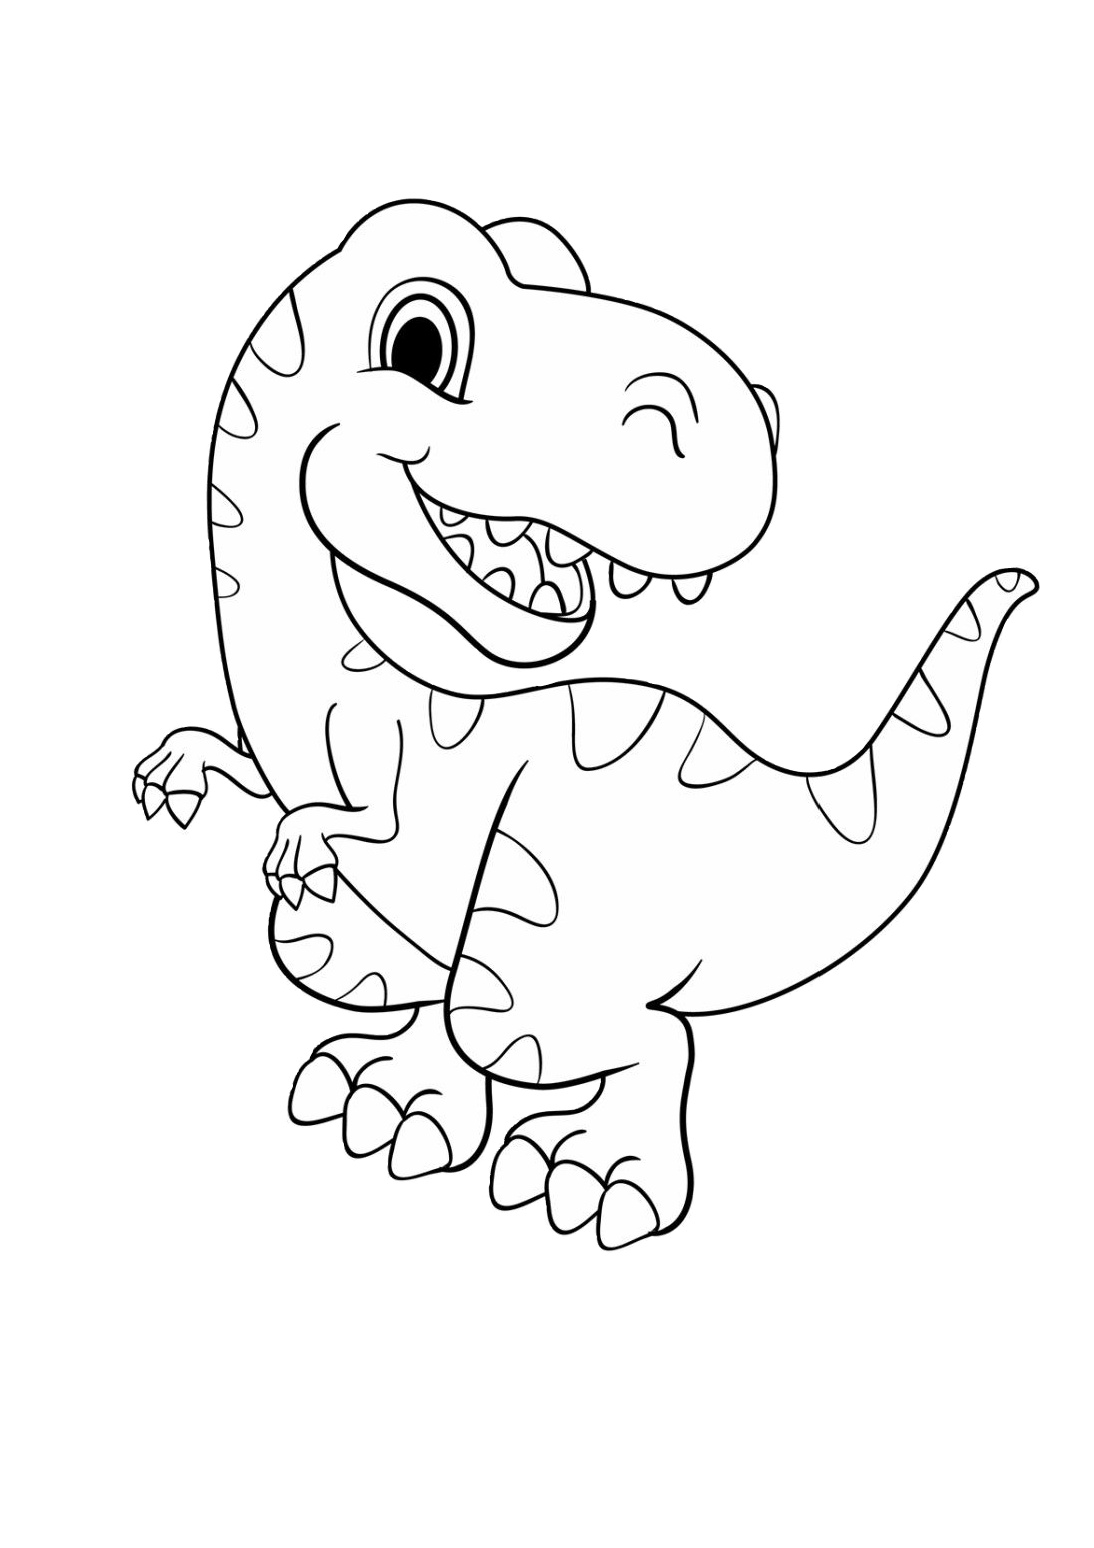 - 35 Dinosaurs Coloring Pages Very Easy To Hard { All Dinosaurs